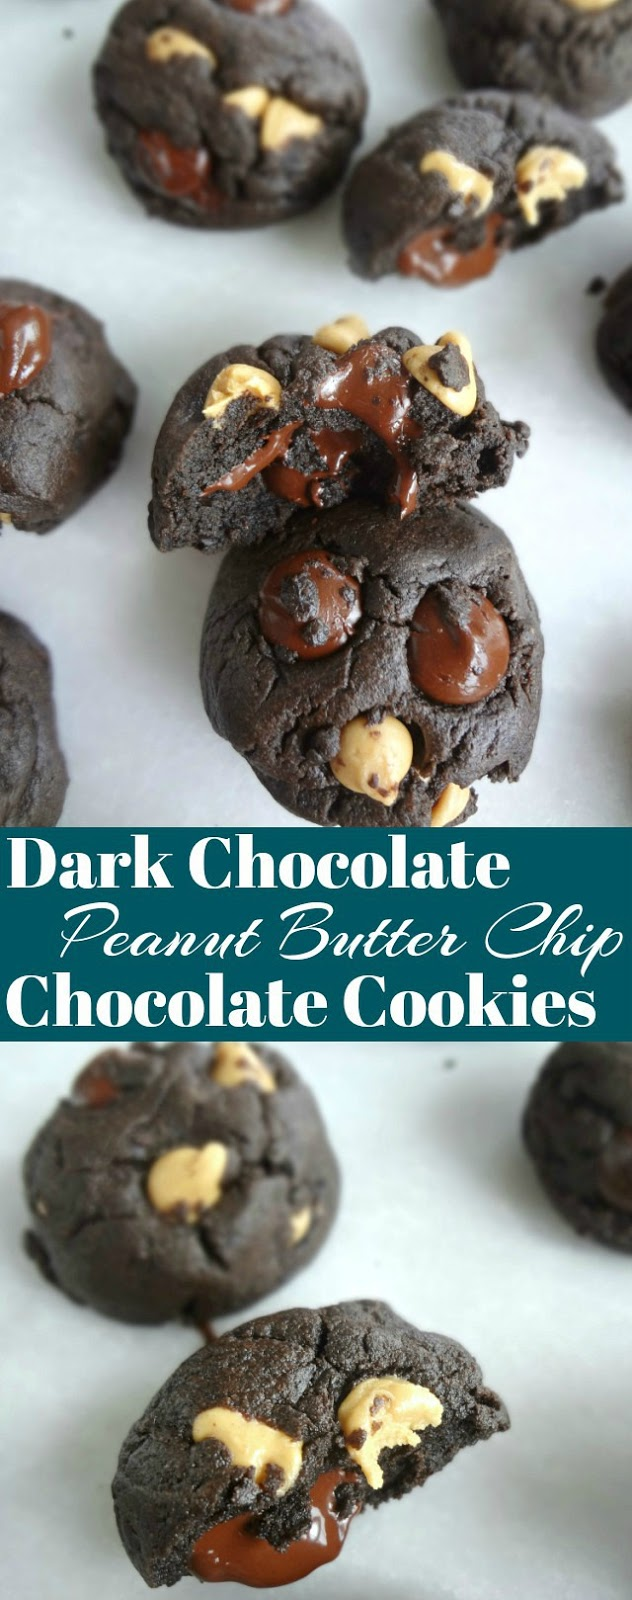 Dark Chocolate Peanut Butter Chip Chocolate Cookies